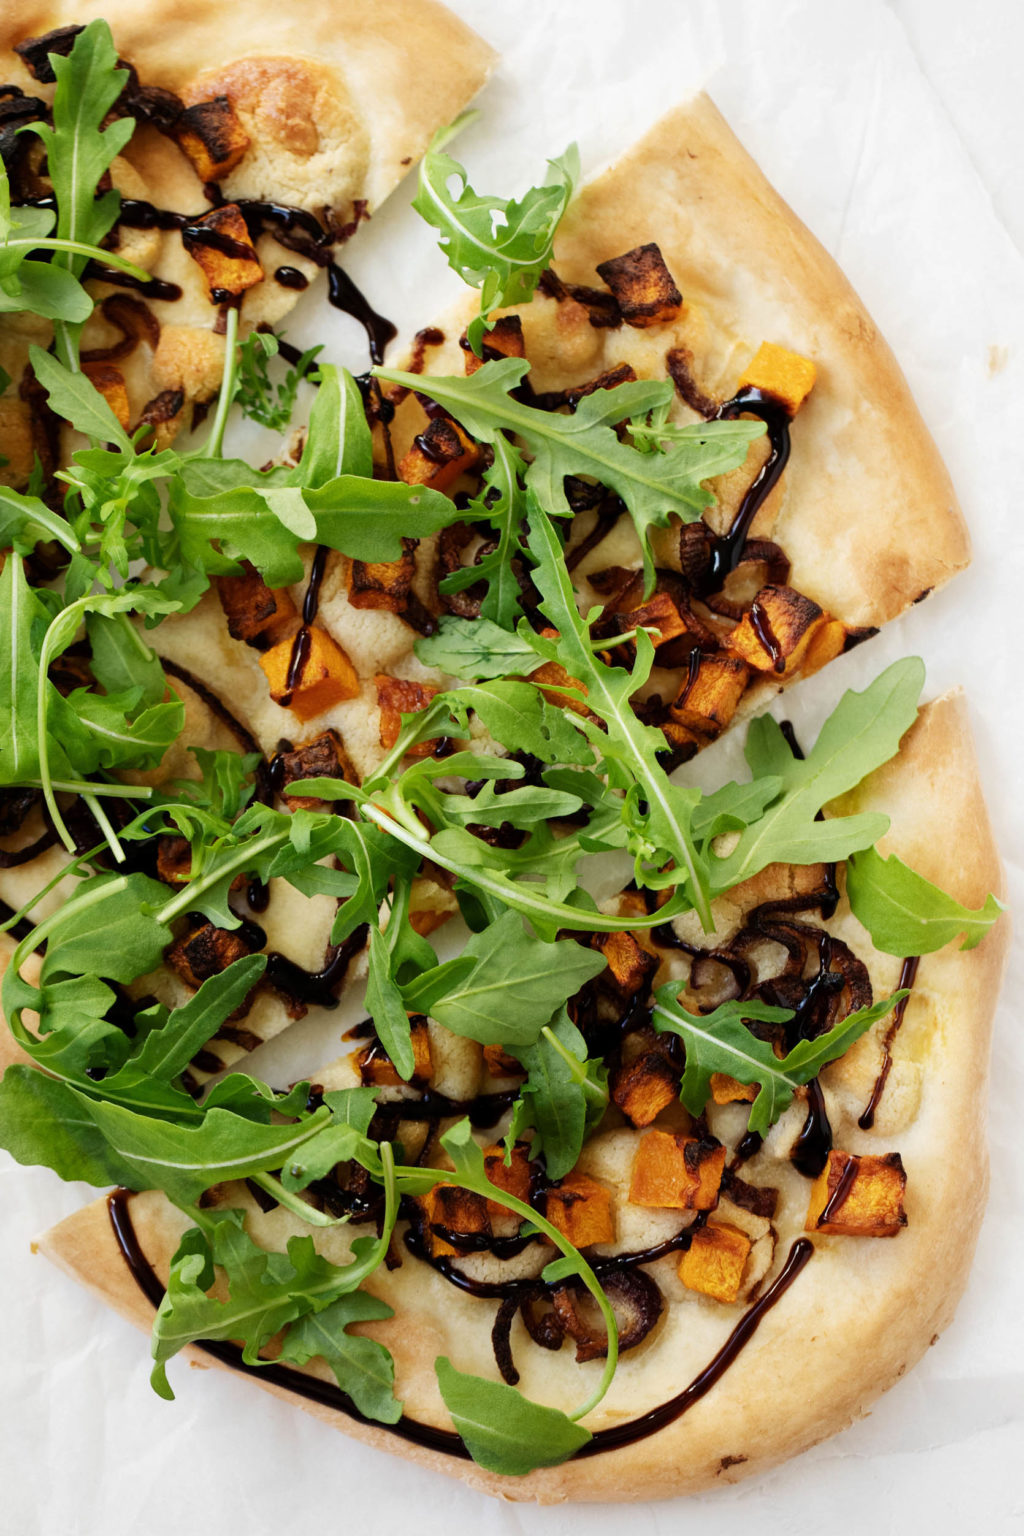 A vibrant and colorful vegan pizza for fall, topped with roasted cubes of butternuts squash, red onion, arugula, and a drizzle of balsamic glaze.